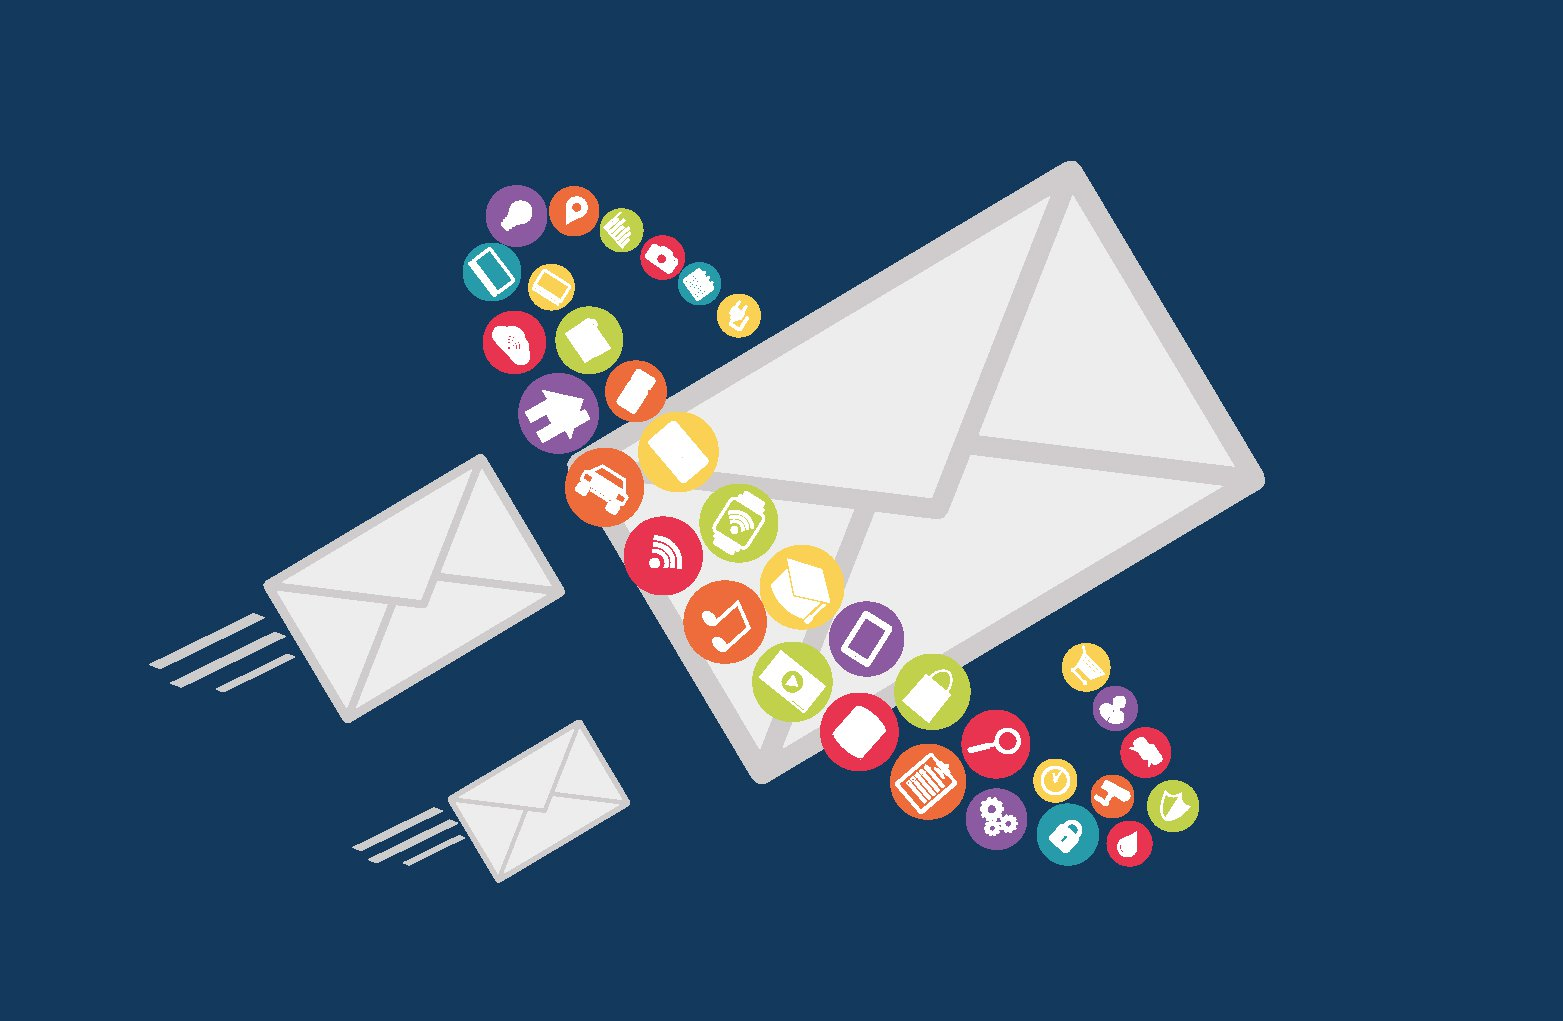 Estas son las distintas formas en que se puede usar el email marketing